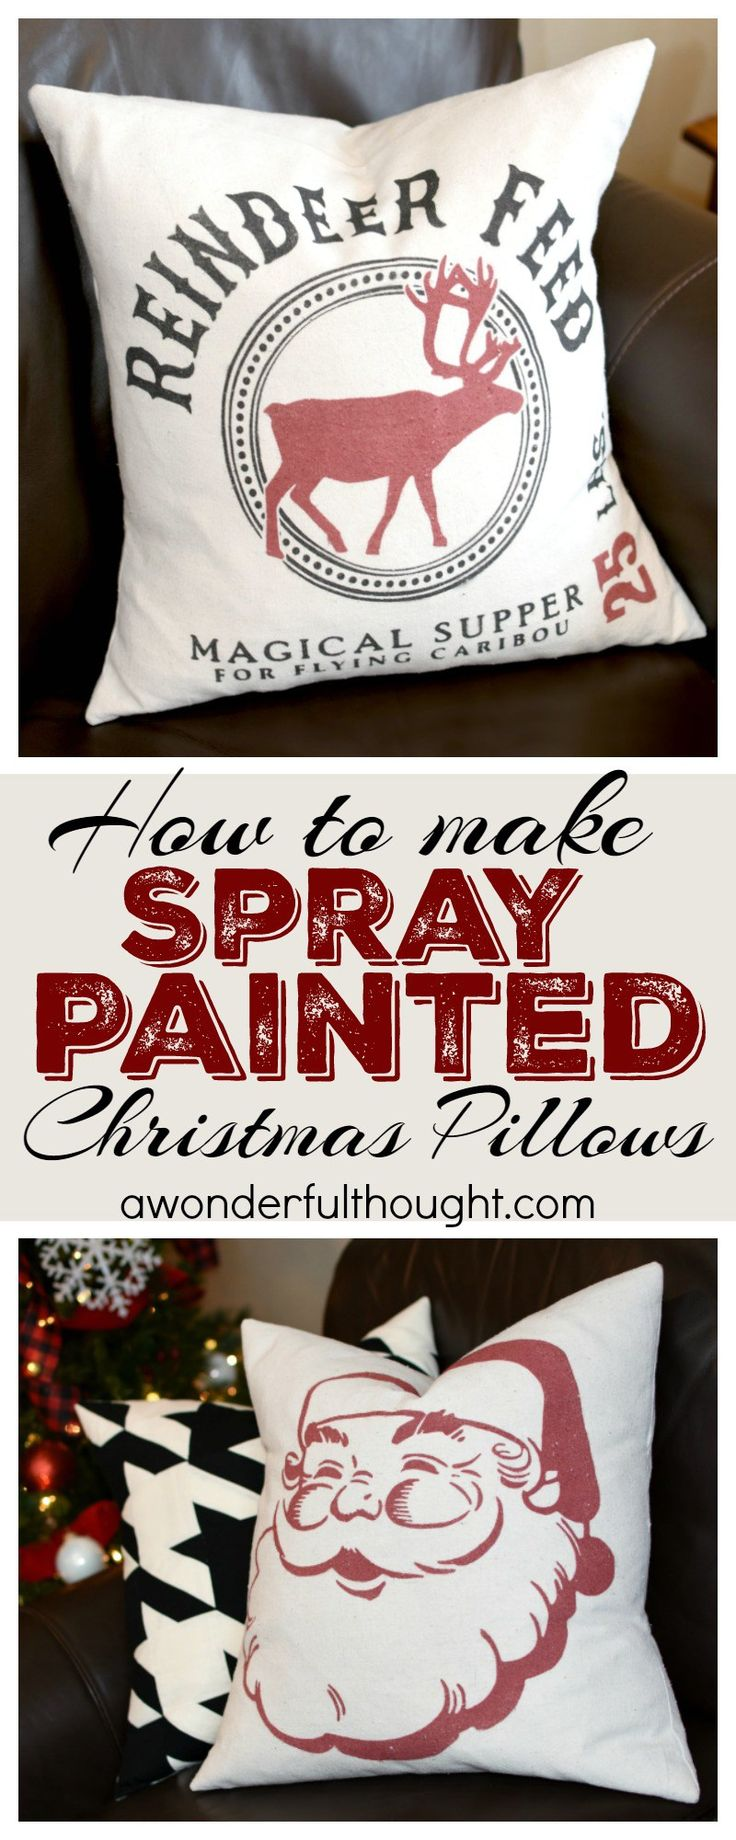 DIY Spray Painted Christmas Pillows | awonderfulthought.com